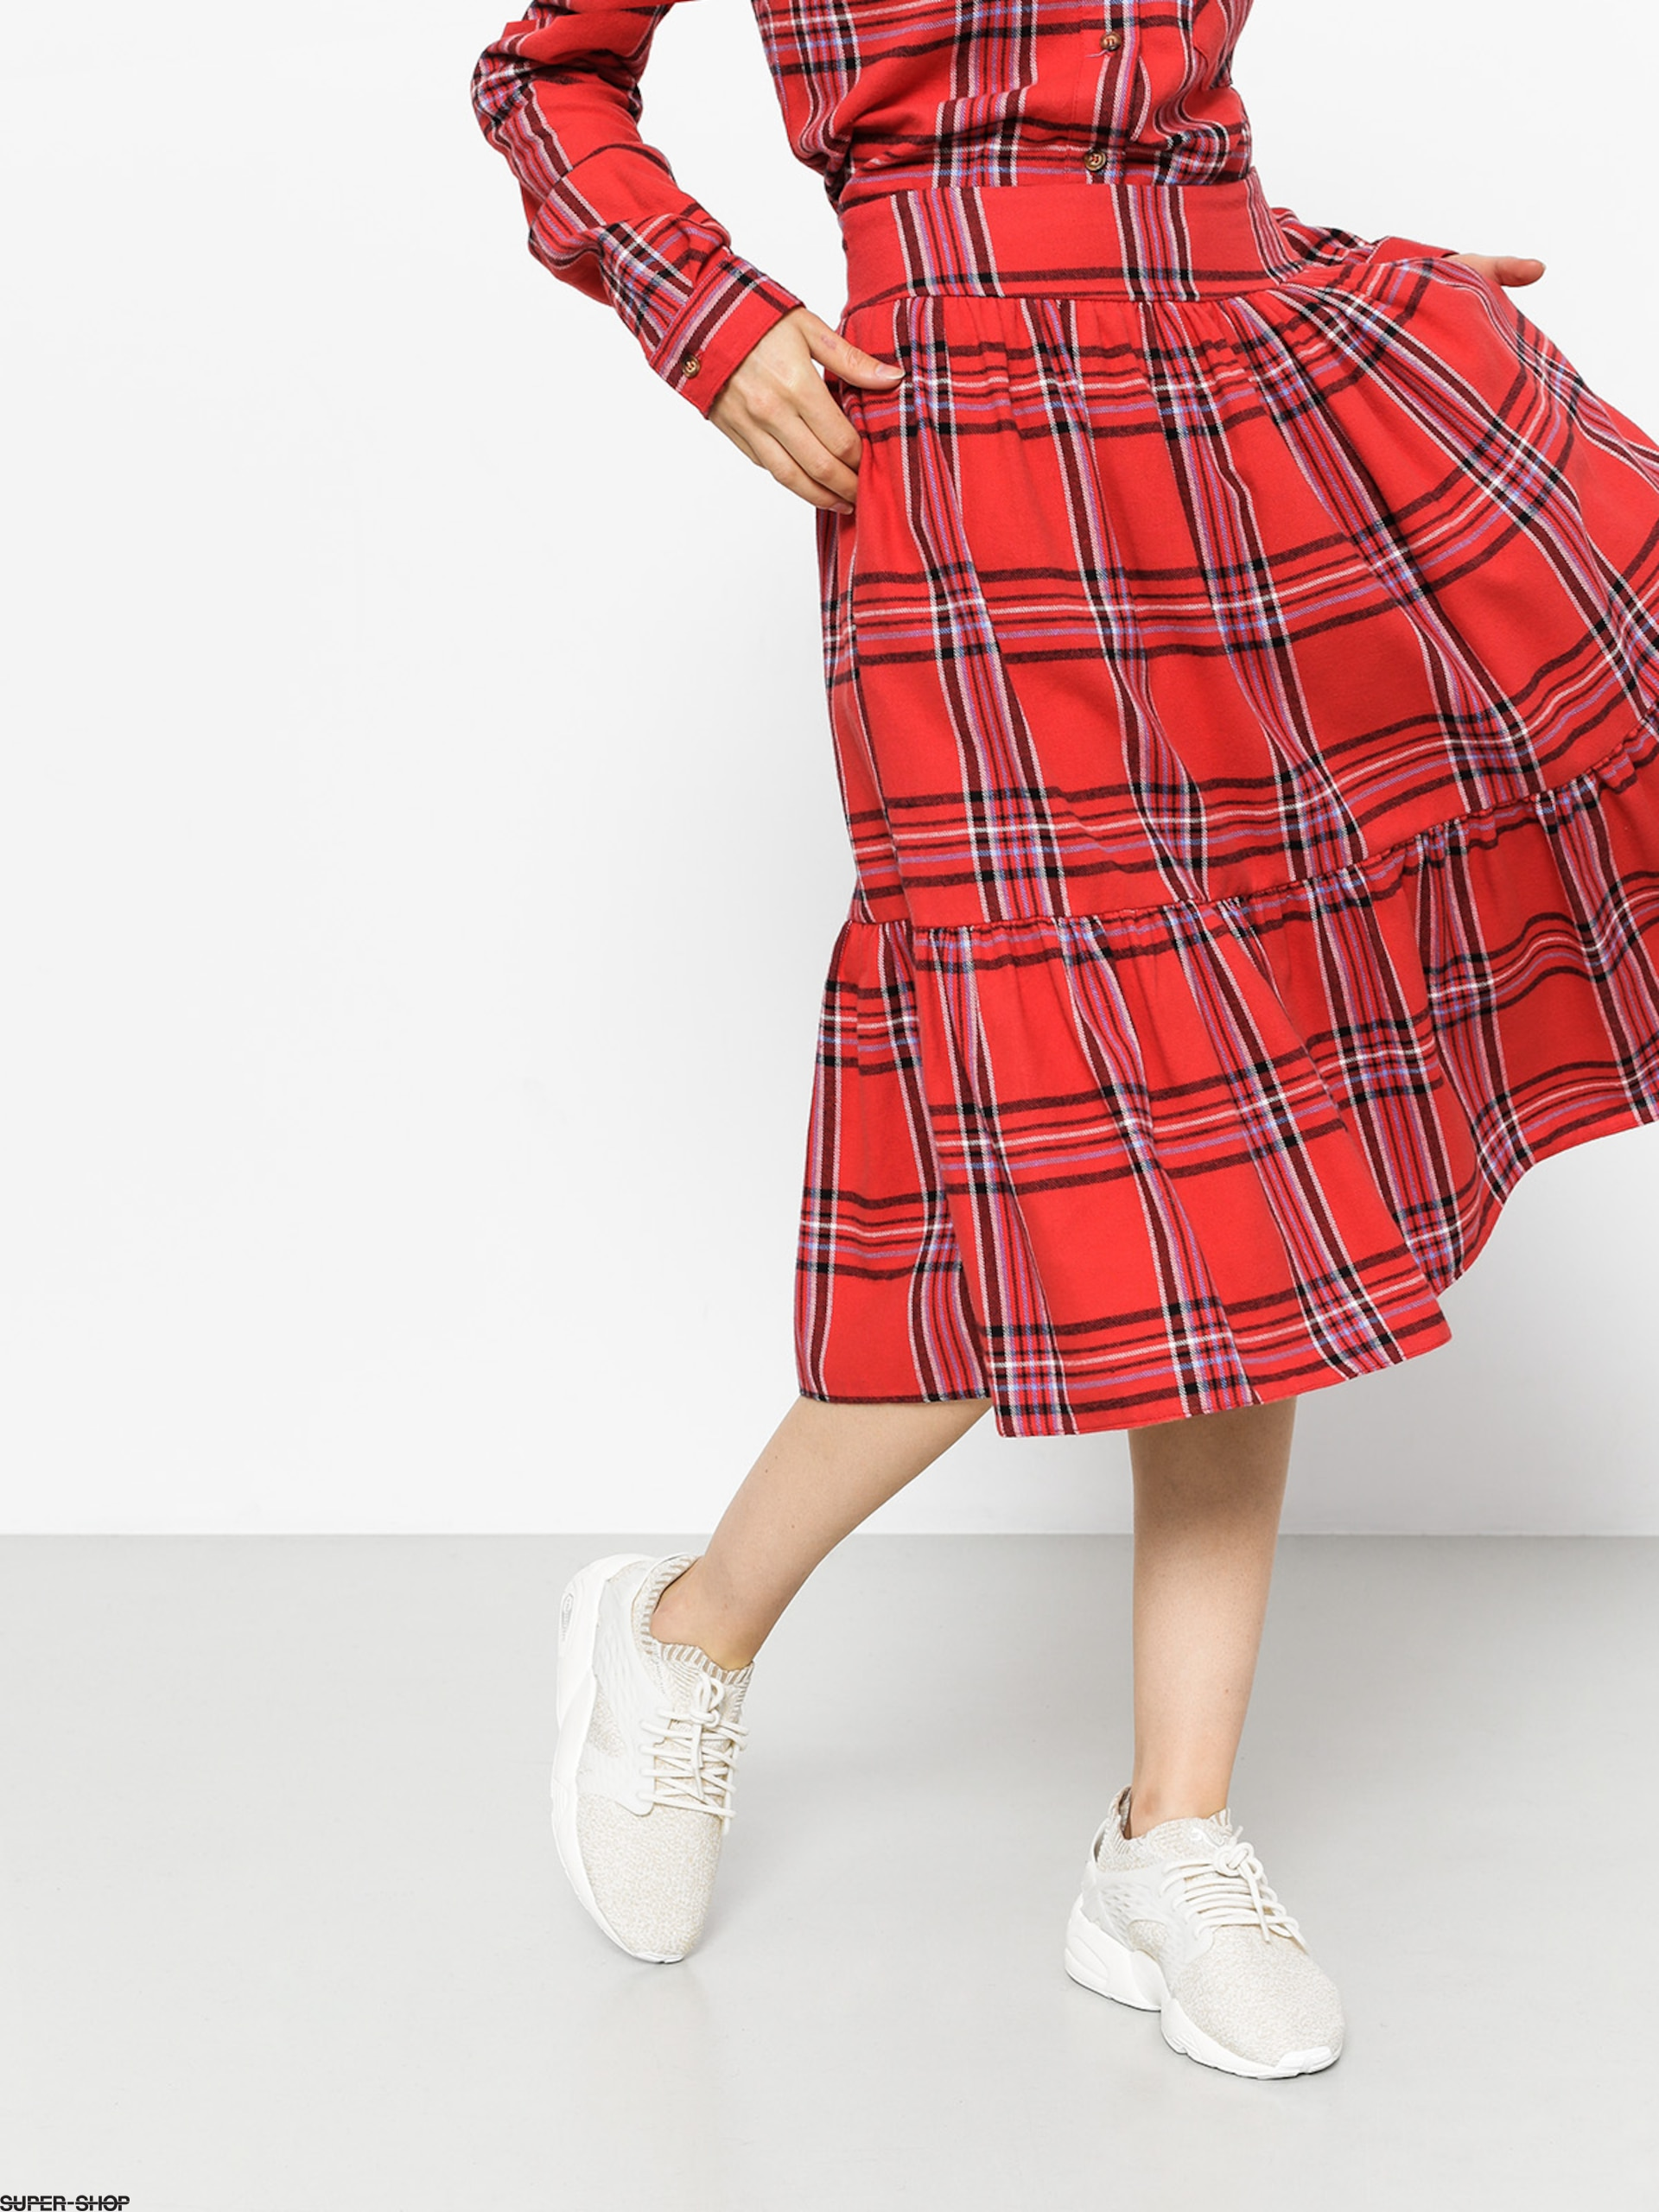 Femi Stories Skirt Bari Wmn (pld red)